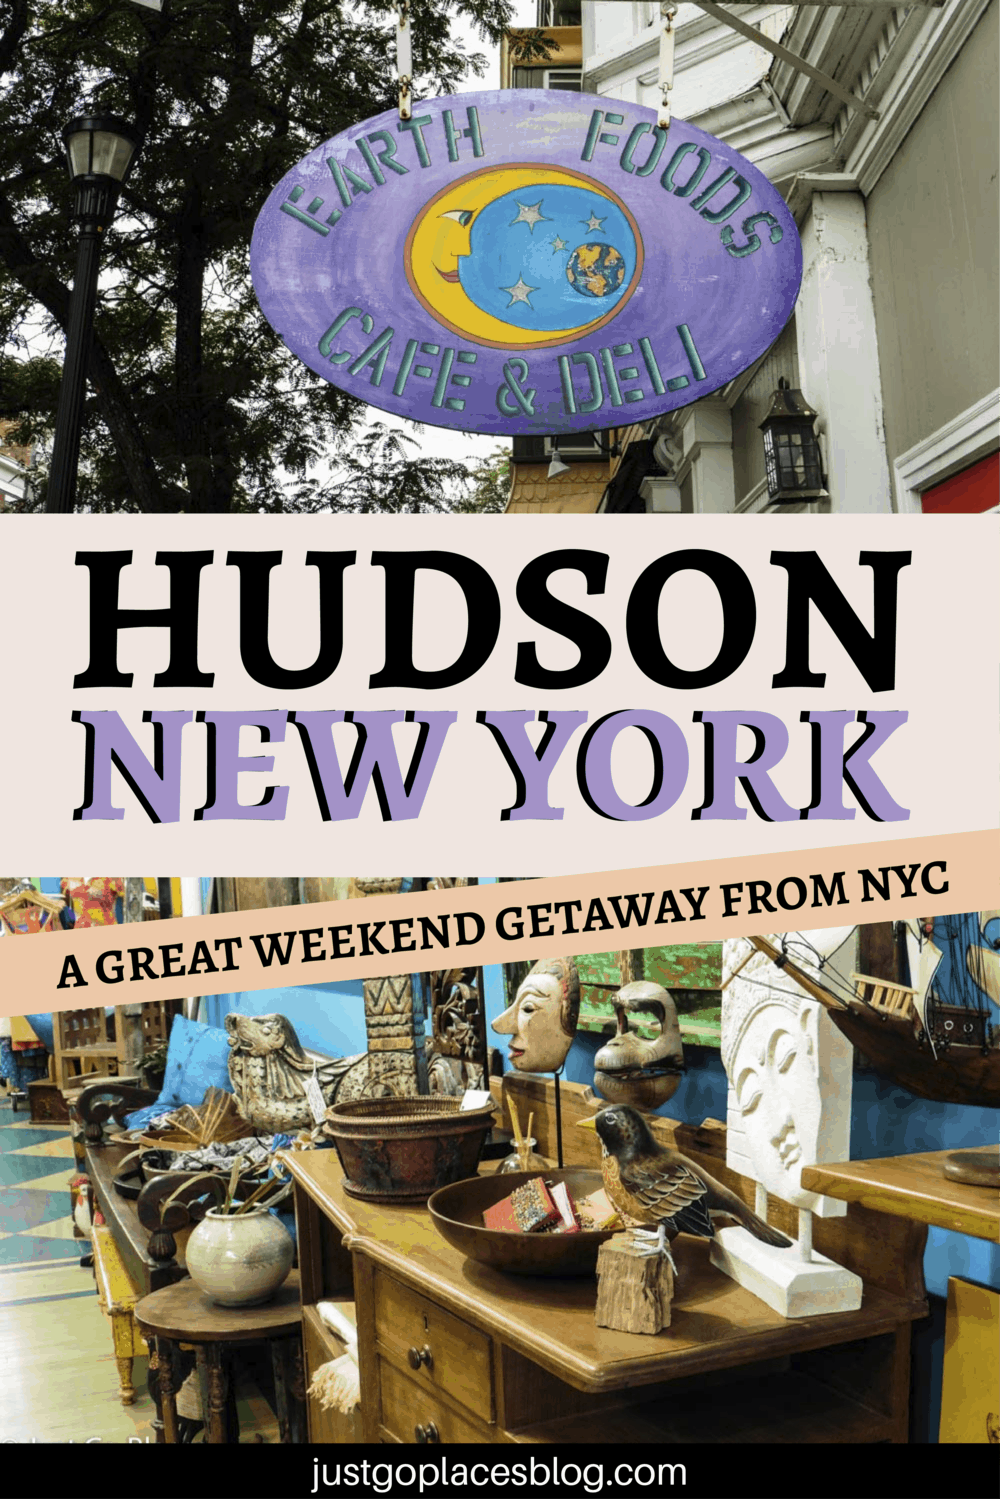 Hudson New York A Great Weekend Getaway from NYC